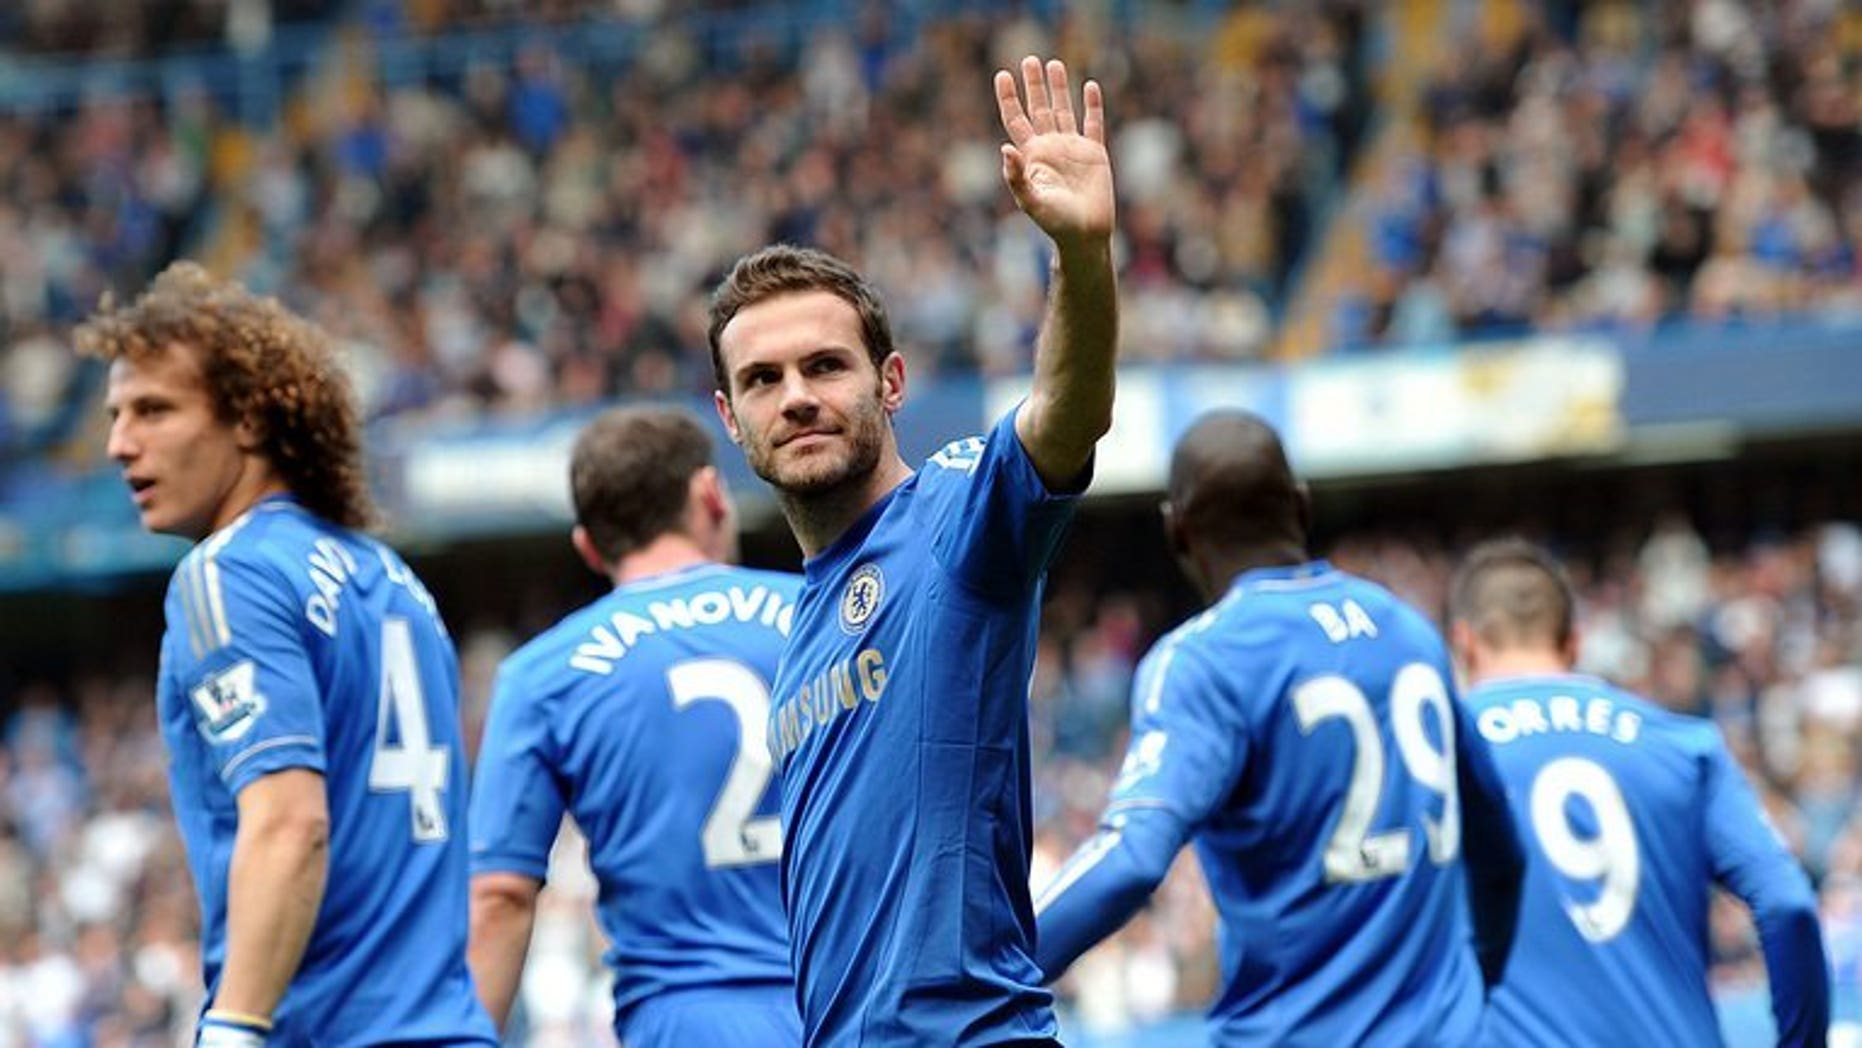 Chelsea's Spanish midfielder Juan Mata celebrates after scoring the opening goal against Everton at Stamford Bridge in London on May 19, 2013. Mata's status at Chelsea appears increasingly fragile after manager Jose Mourinho declared that Brazilian Oscar was now his number one playmaker.